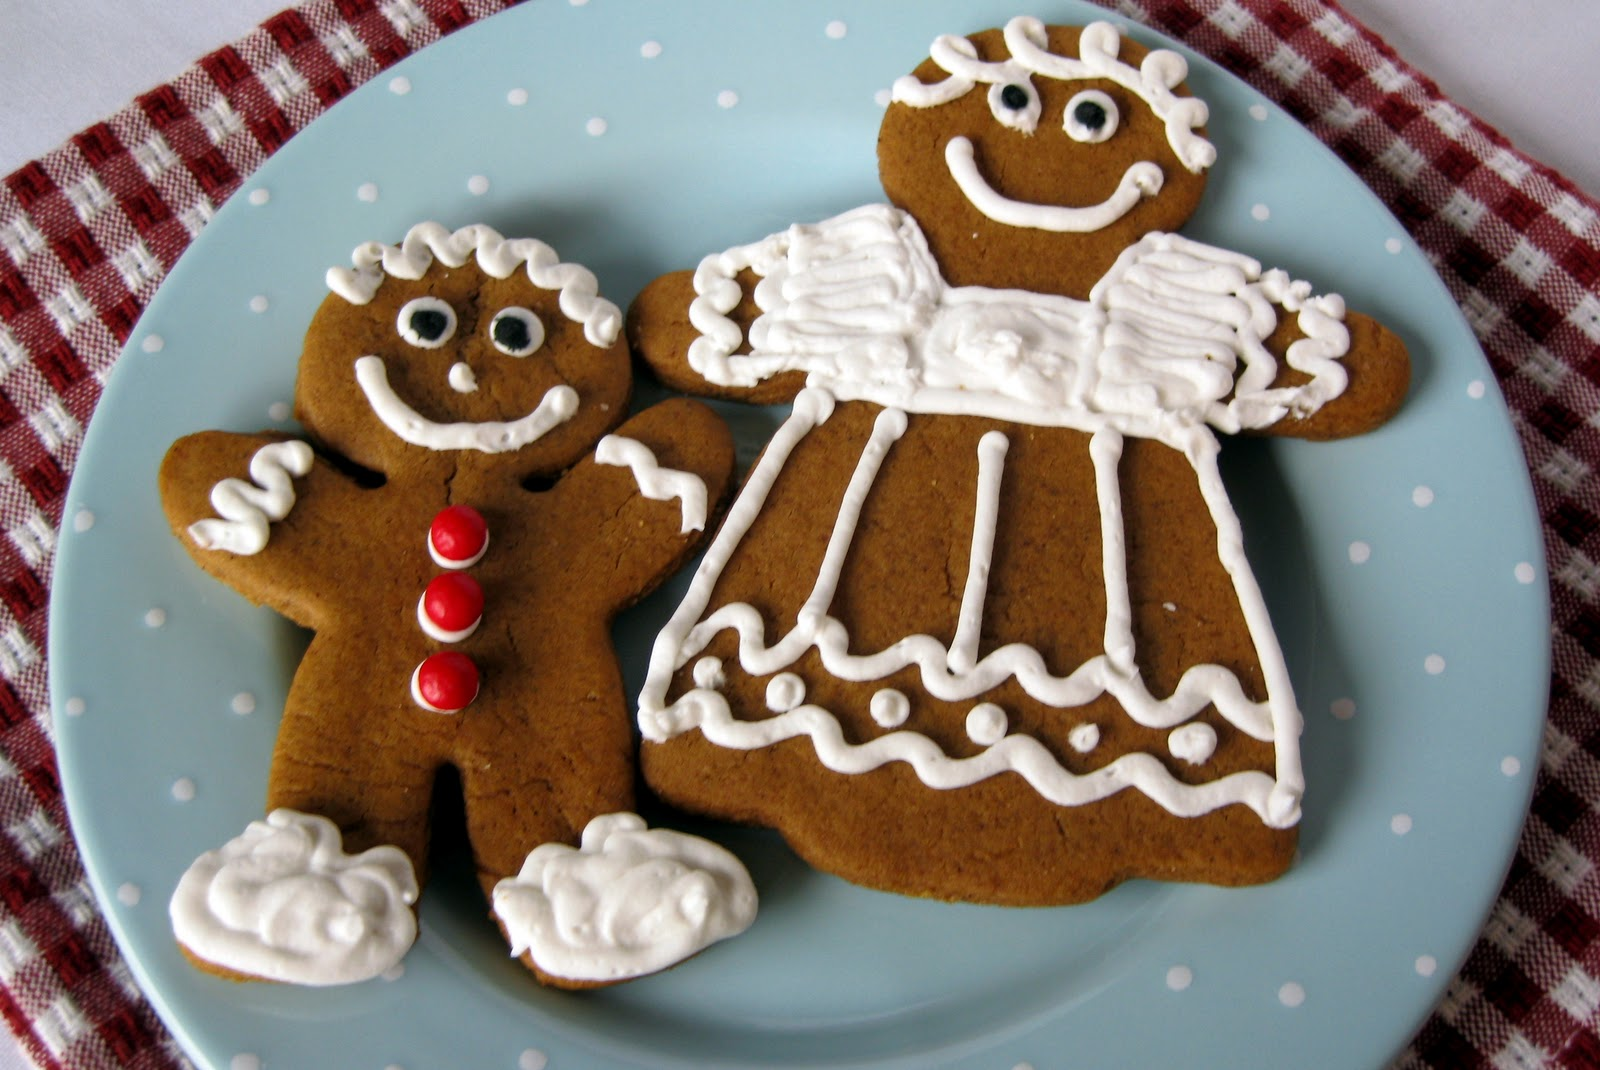 In the Long kitchen: Gingerbread Cookies with Royal Icing